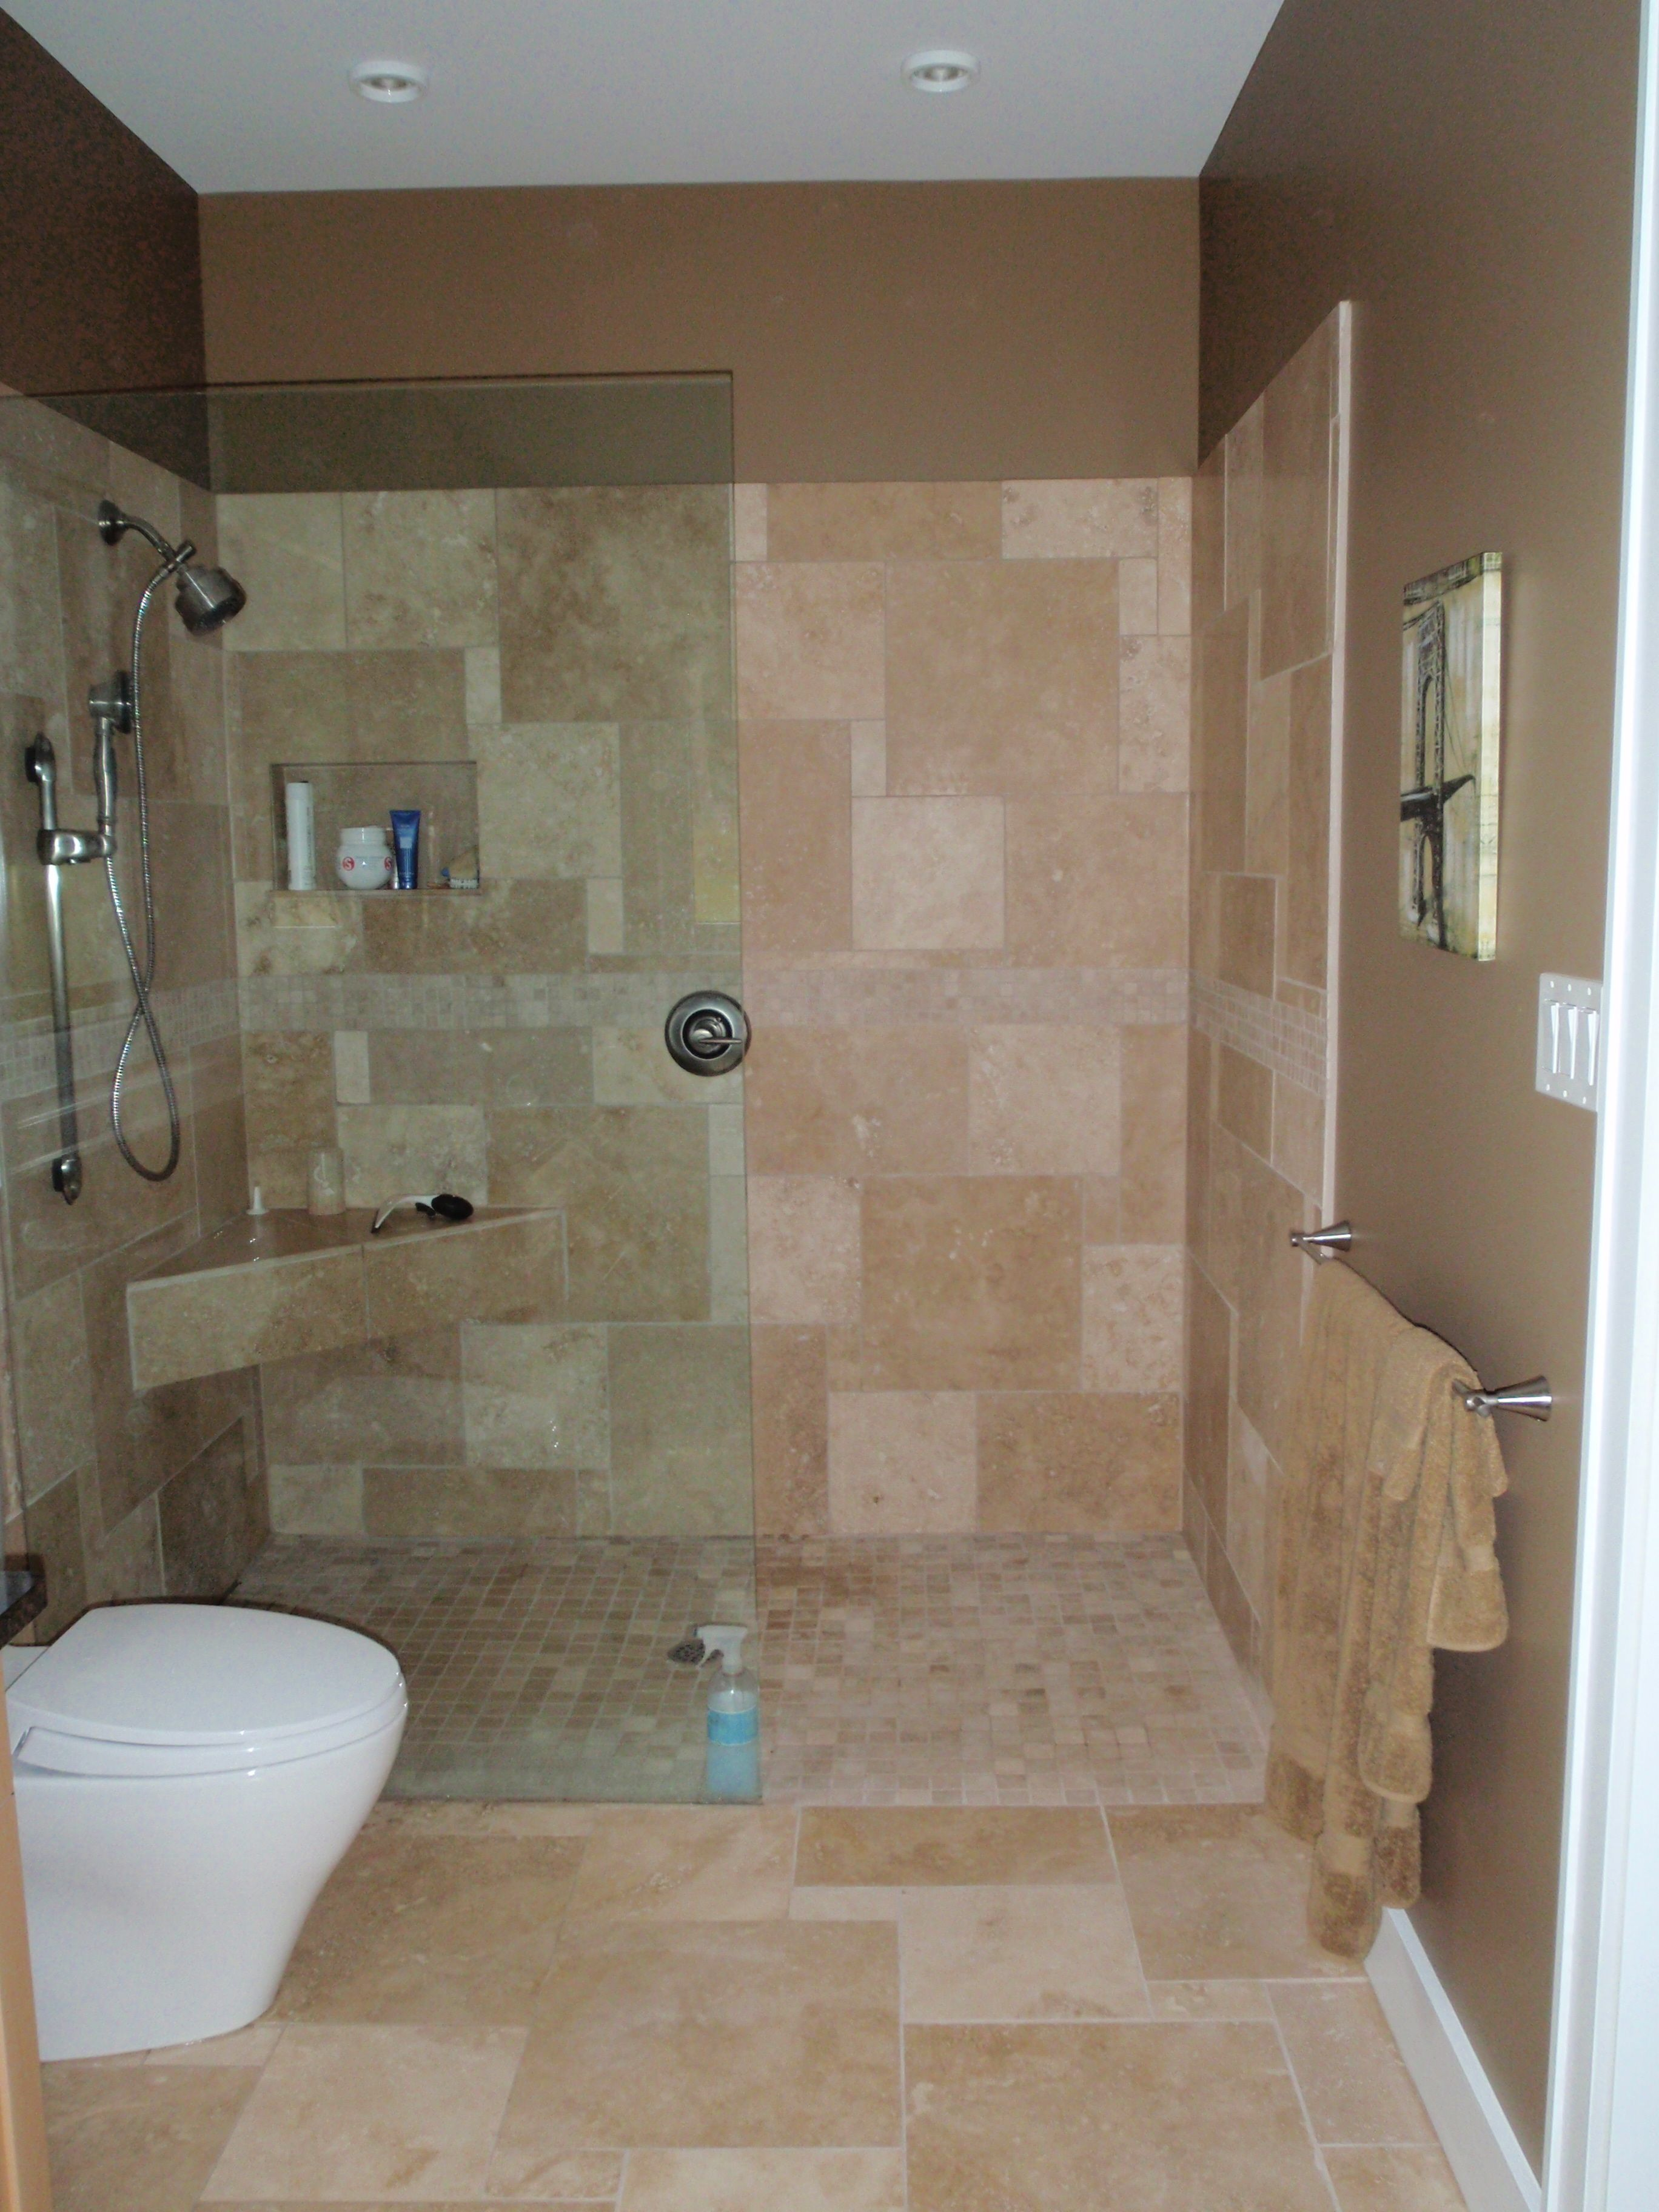 Open shower - no door. | Bathroom ideas & tips | Pinterest ...